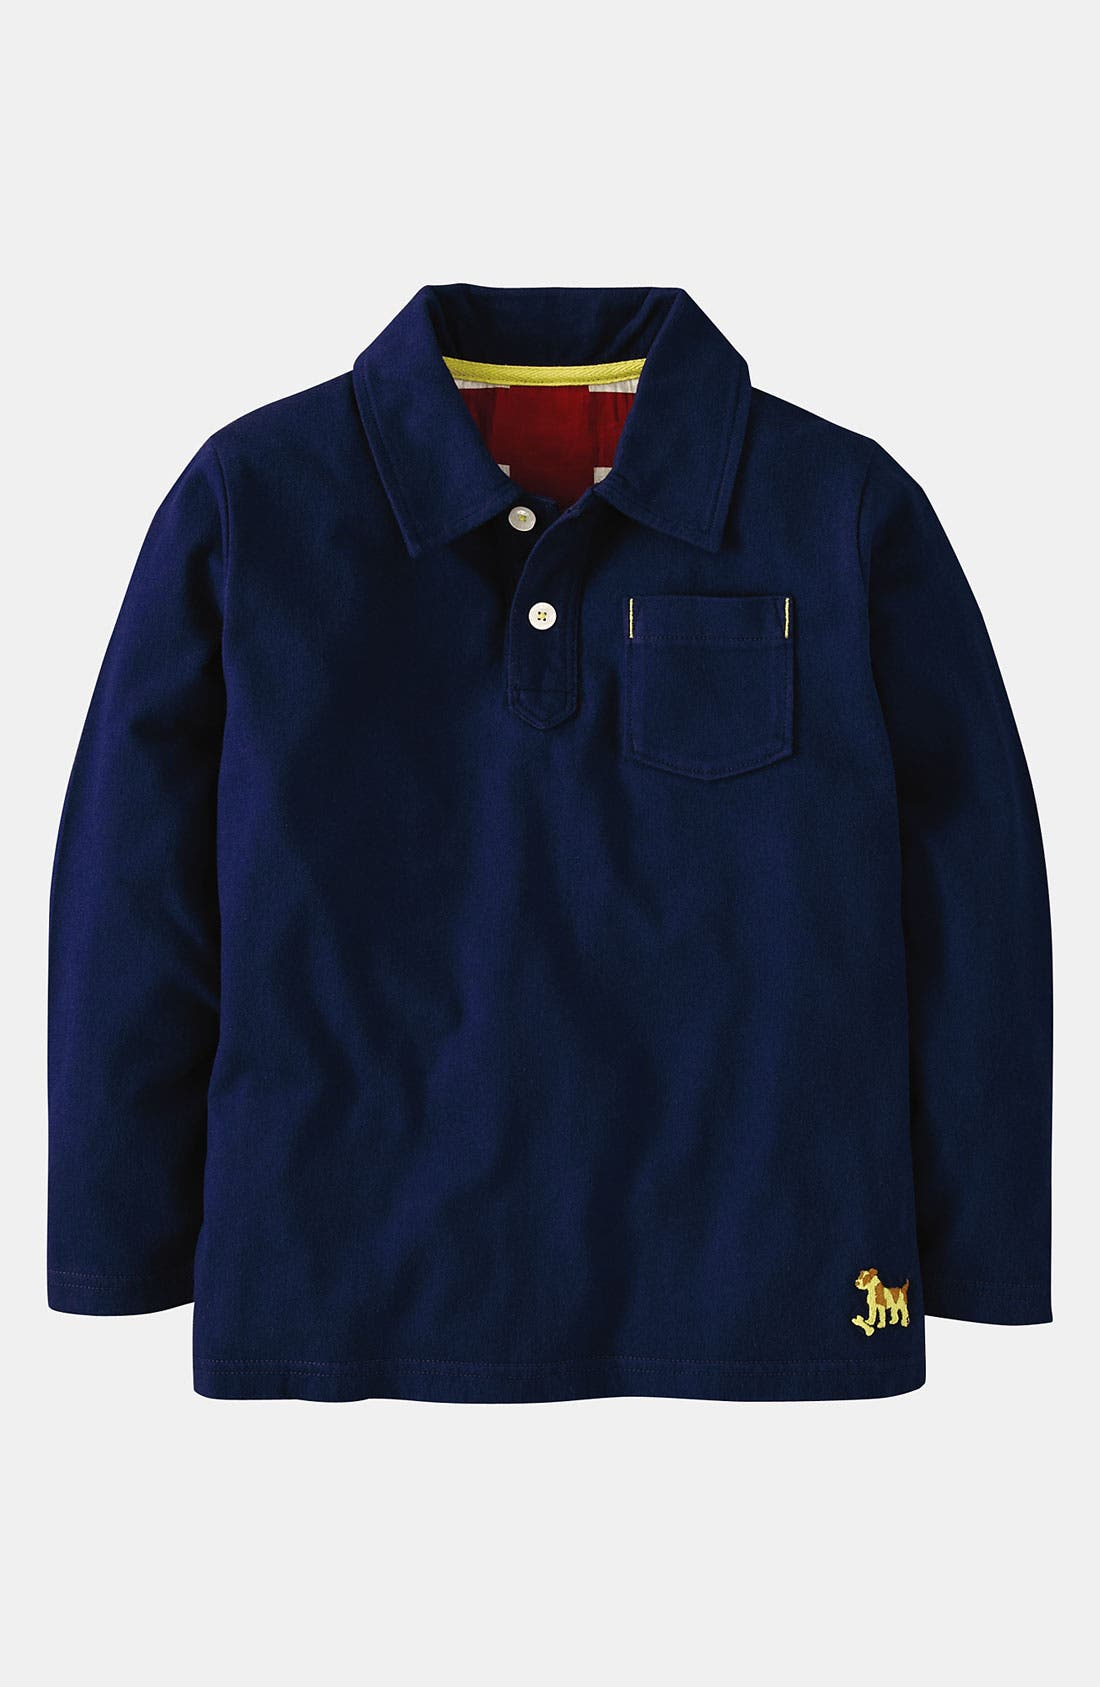 Main Image - Mini Boden Jersey Polo (Toddler)